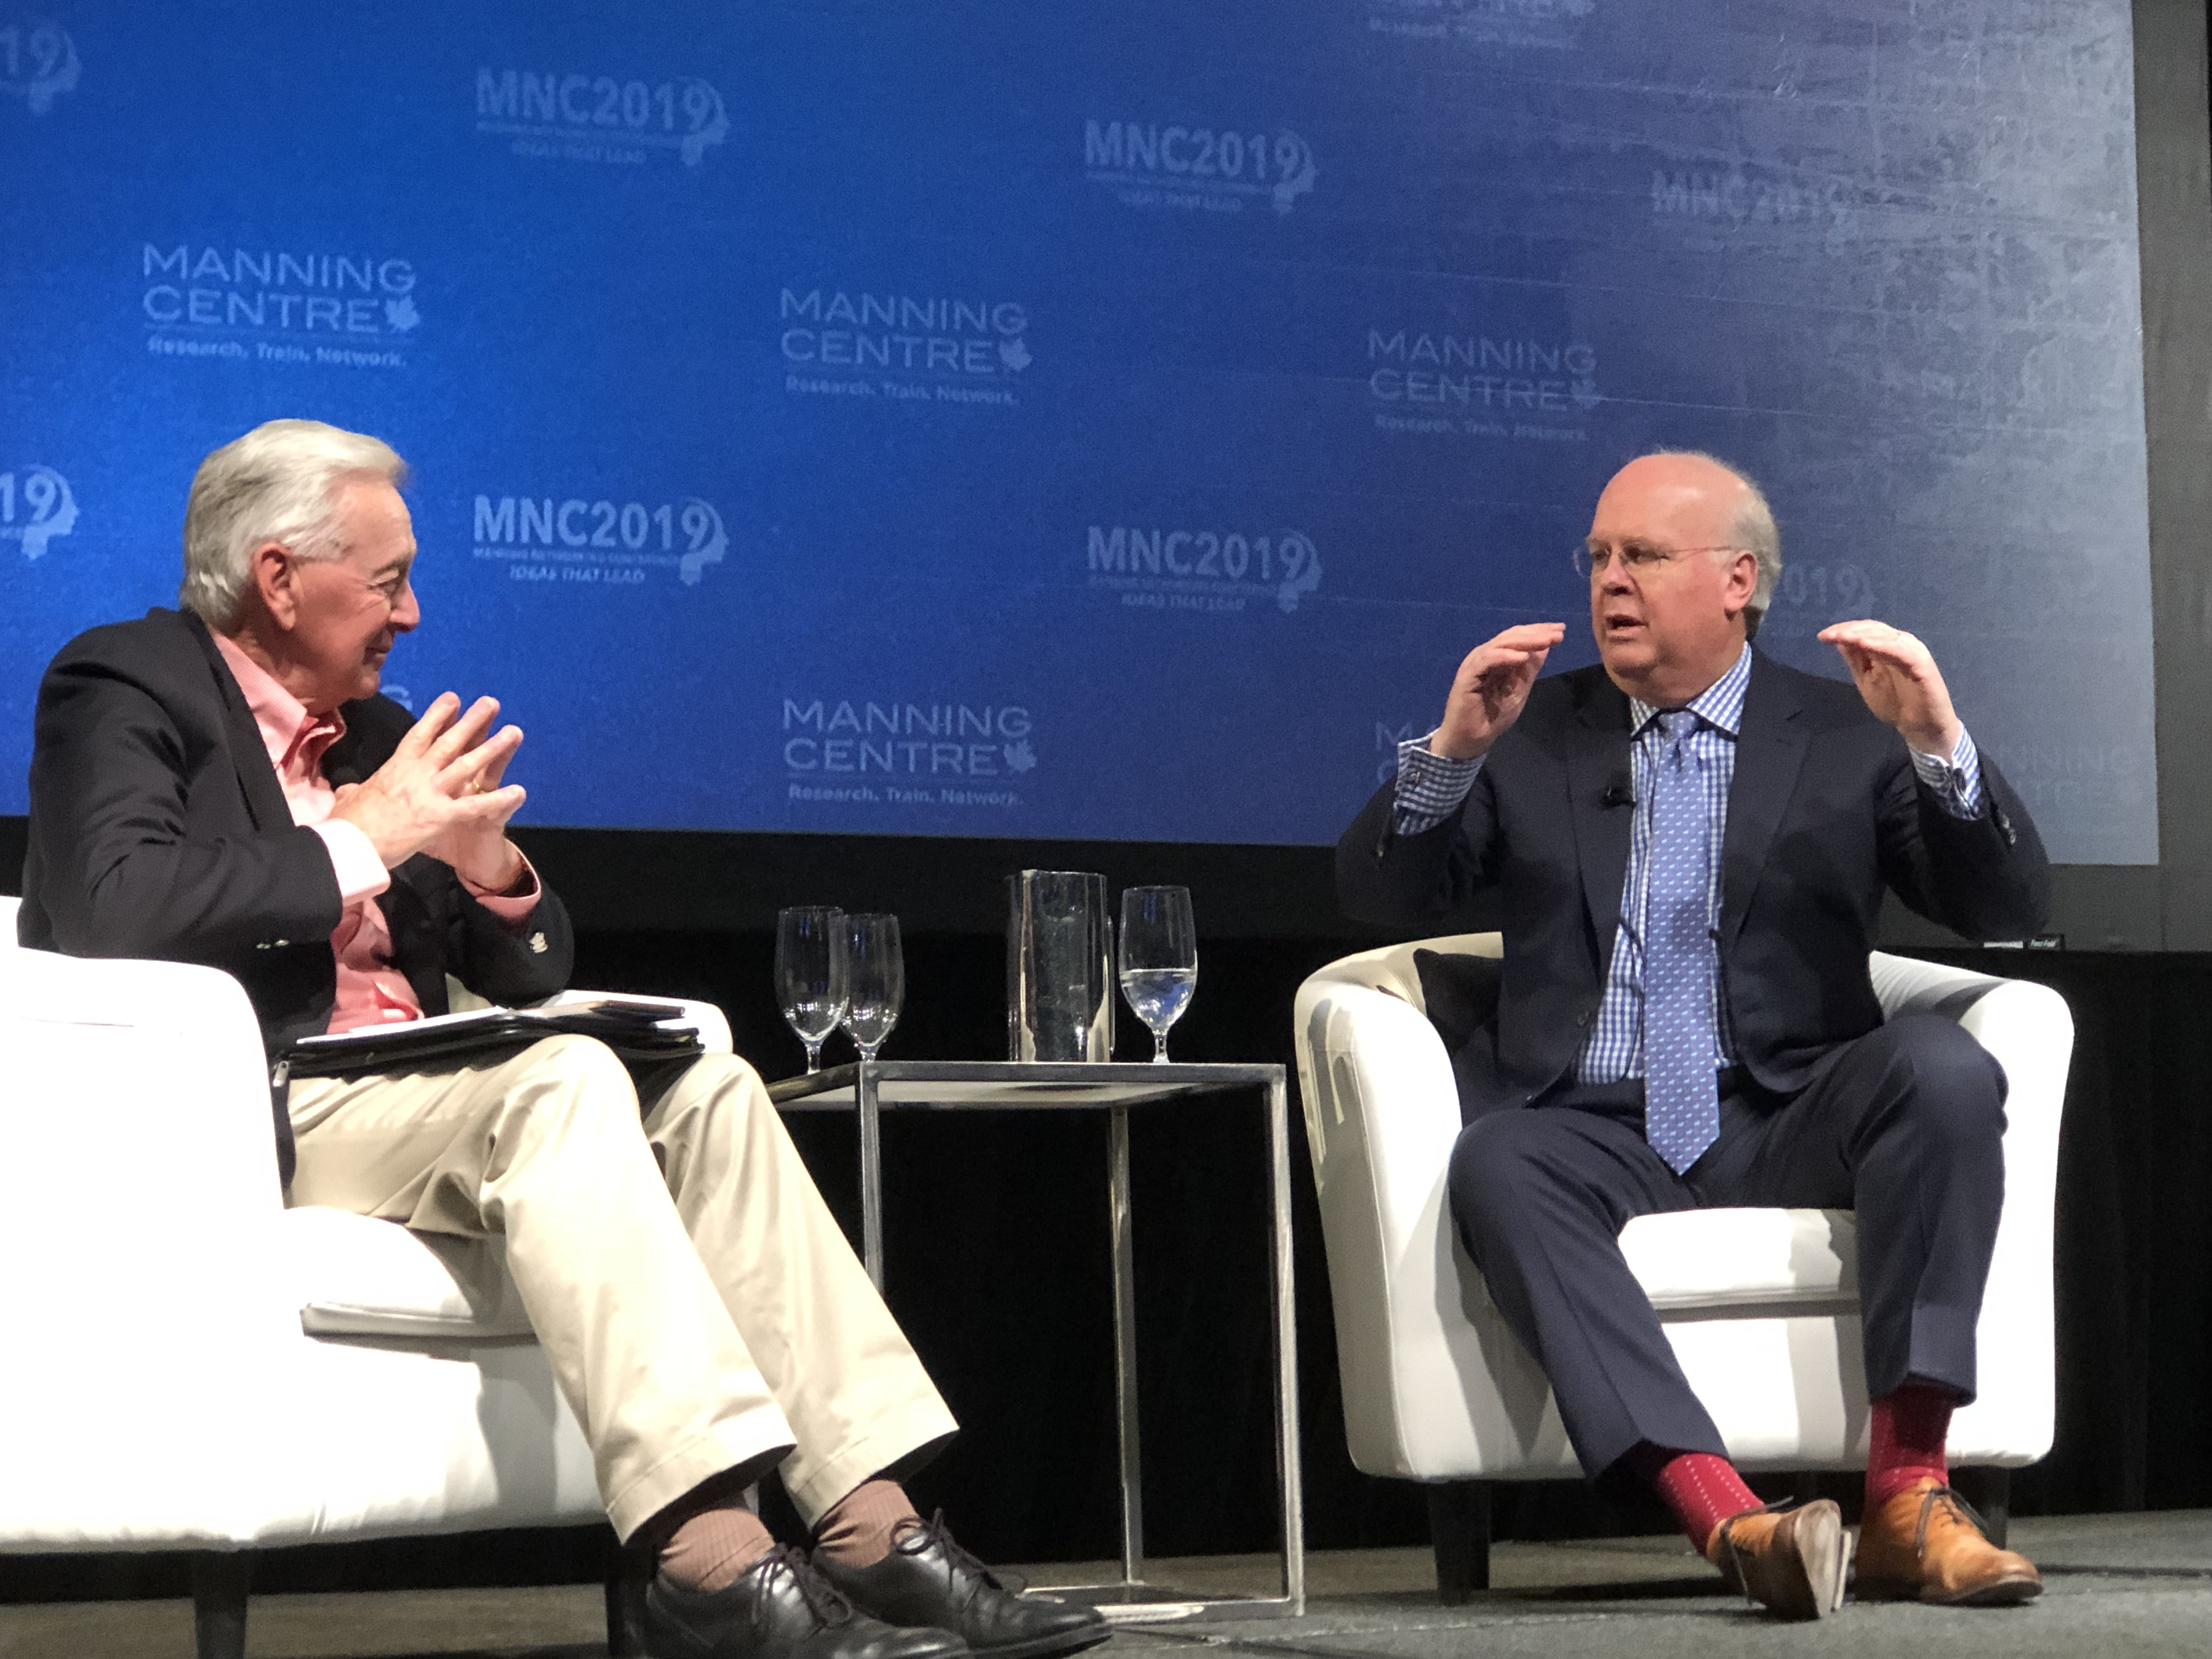 Karl Rove answers questions from the crowd at the Manning Networking Conference in Ottawa, Canada on March 22, 2019. Dailiy Caller photo by Janet Krayden